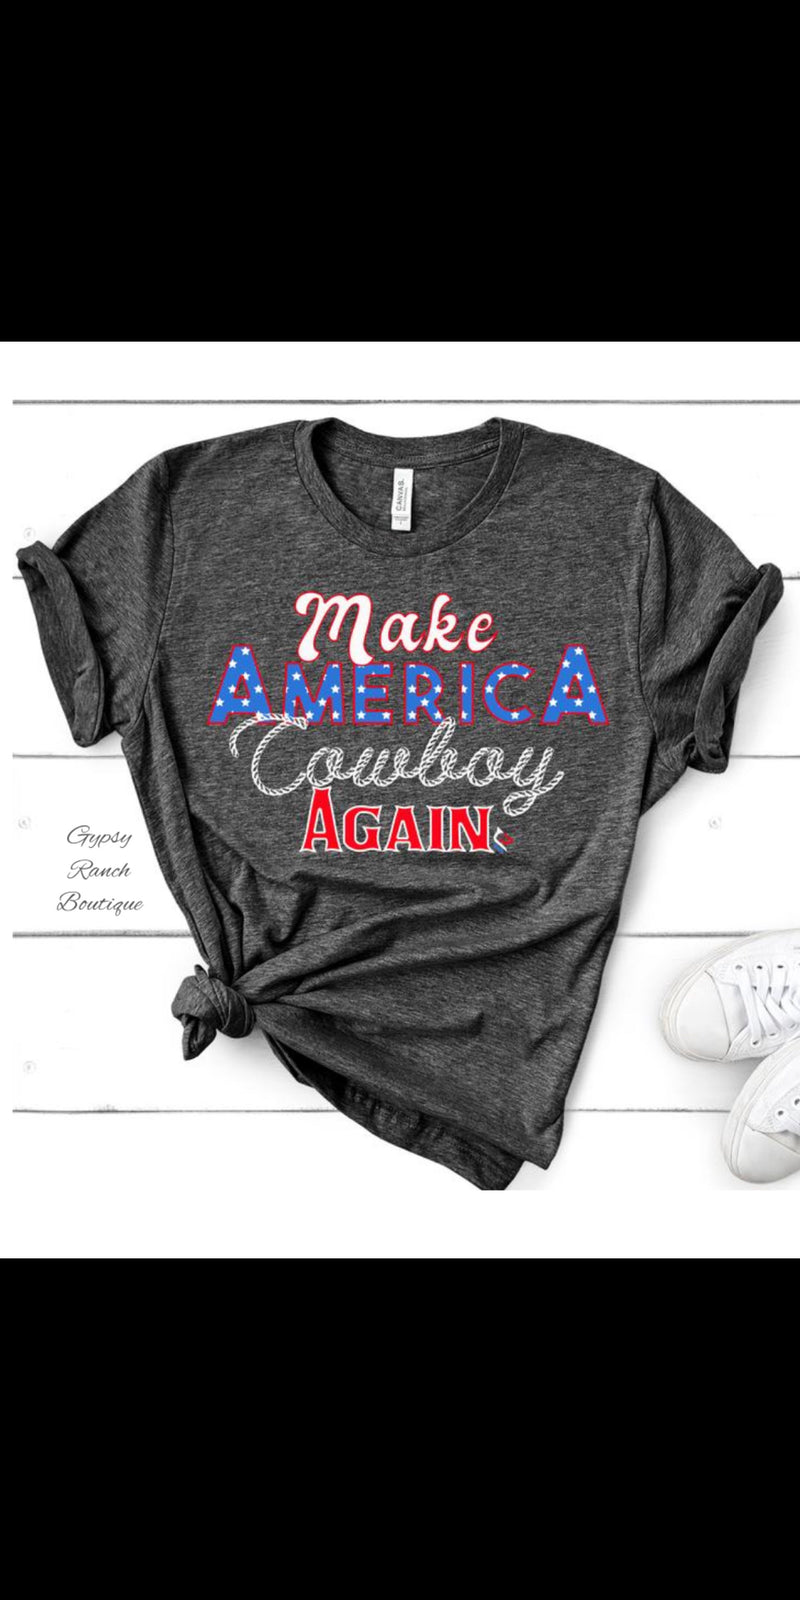 Make America Cowboy Again Top - Also in Plus Size